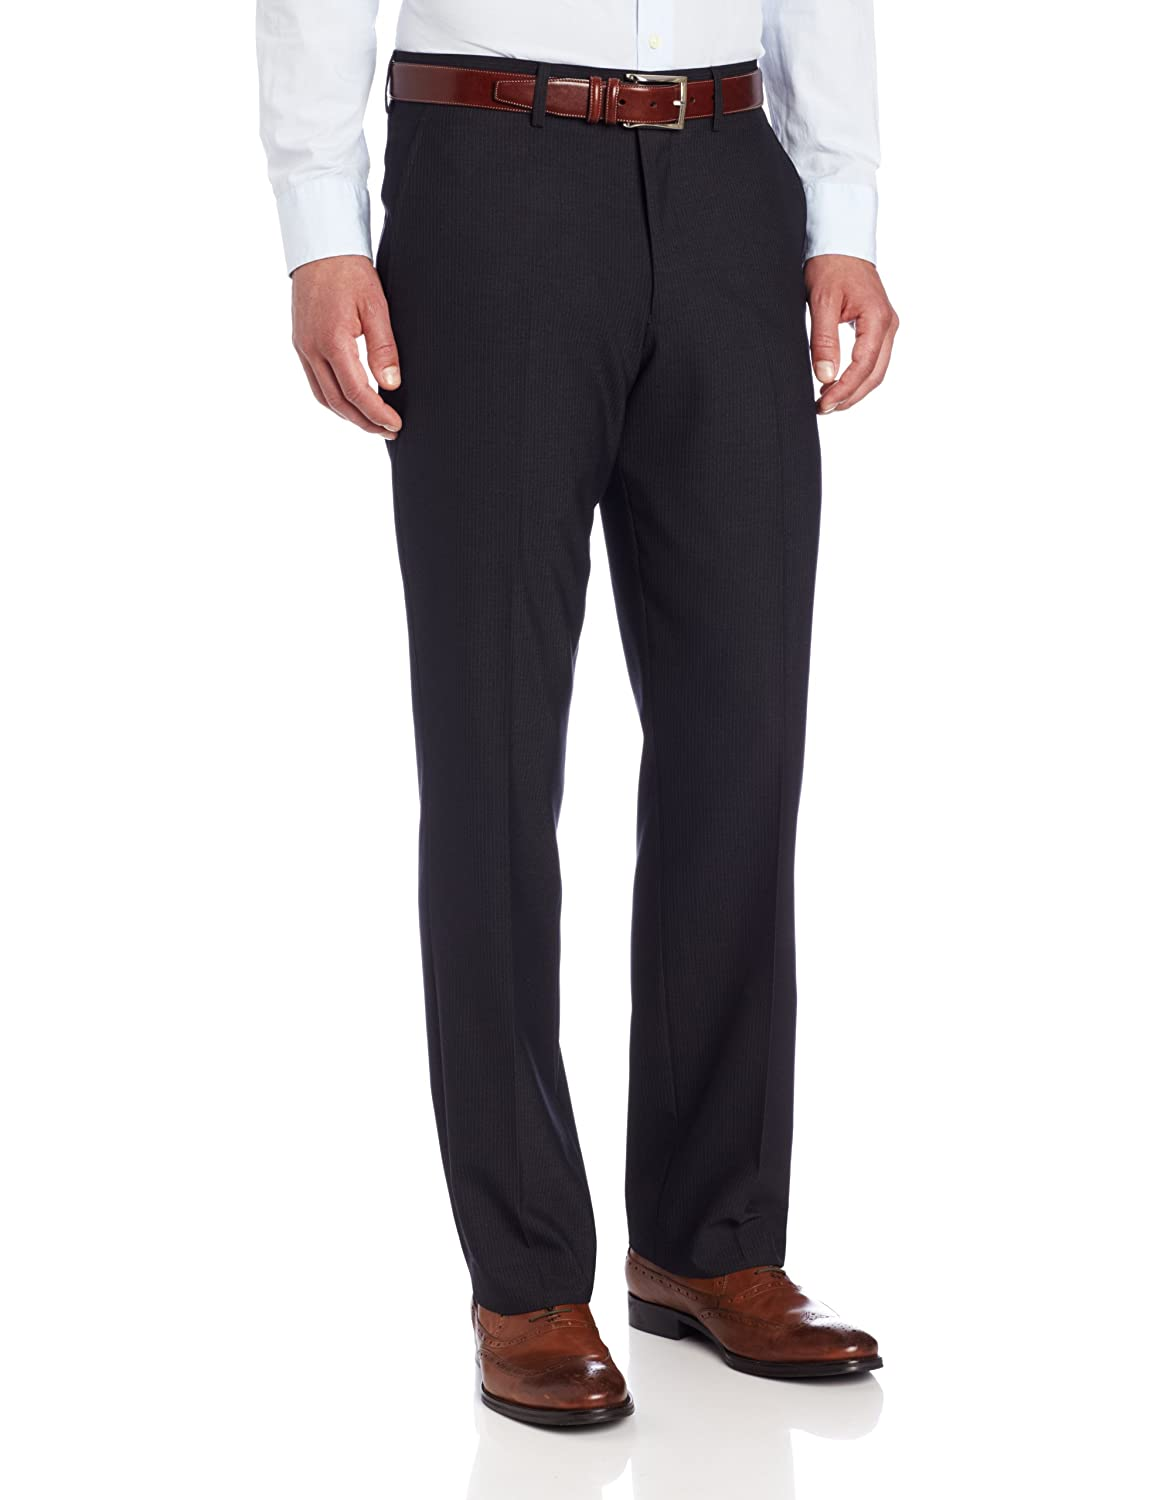 Unlisted by Kenneth Cole Mens Suit Separate (Blazer and Pant) 12U20014